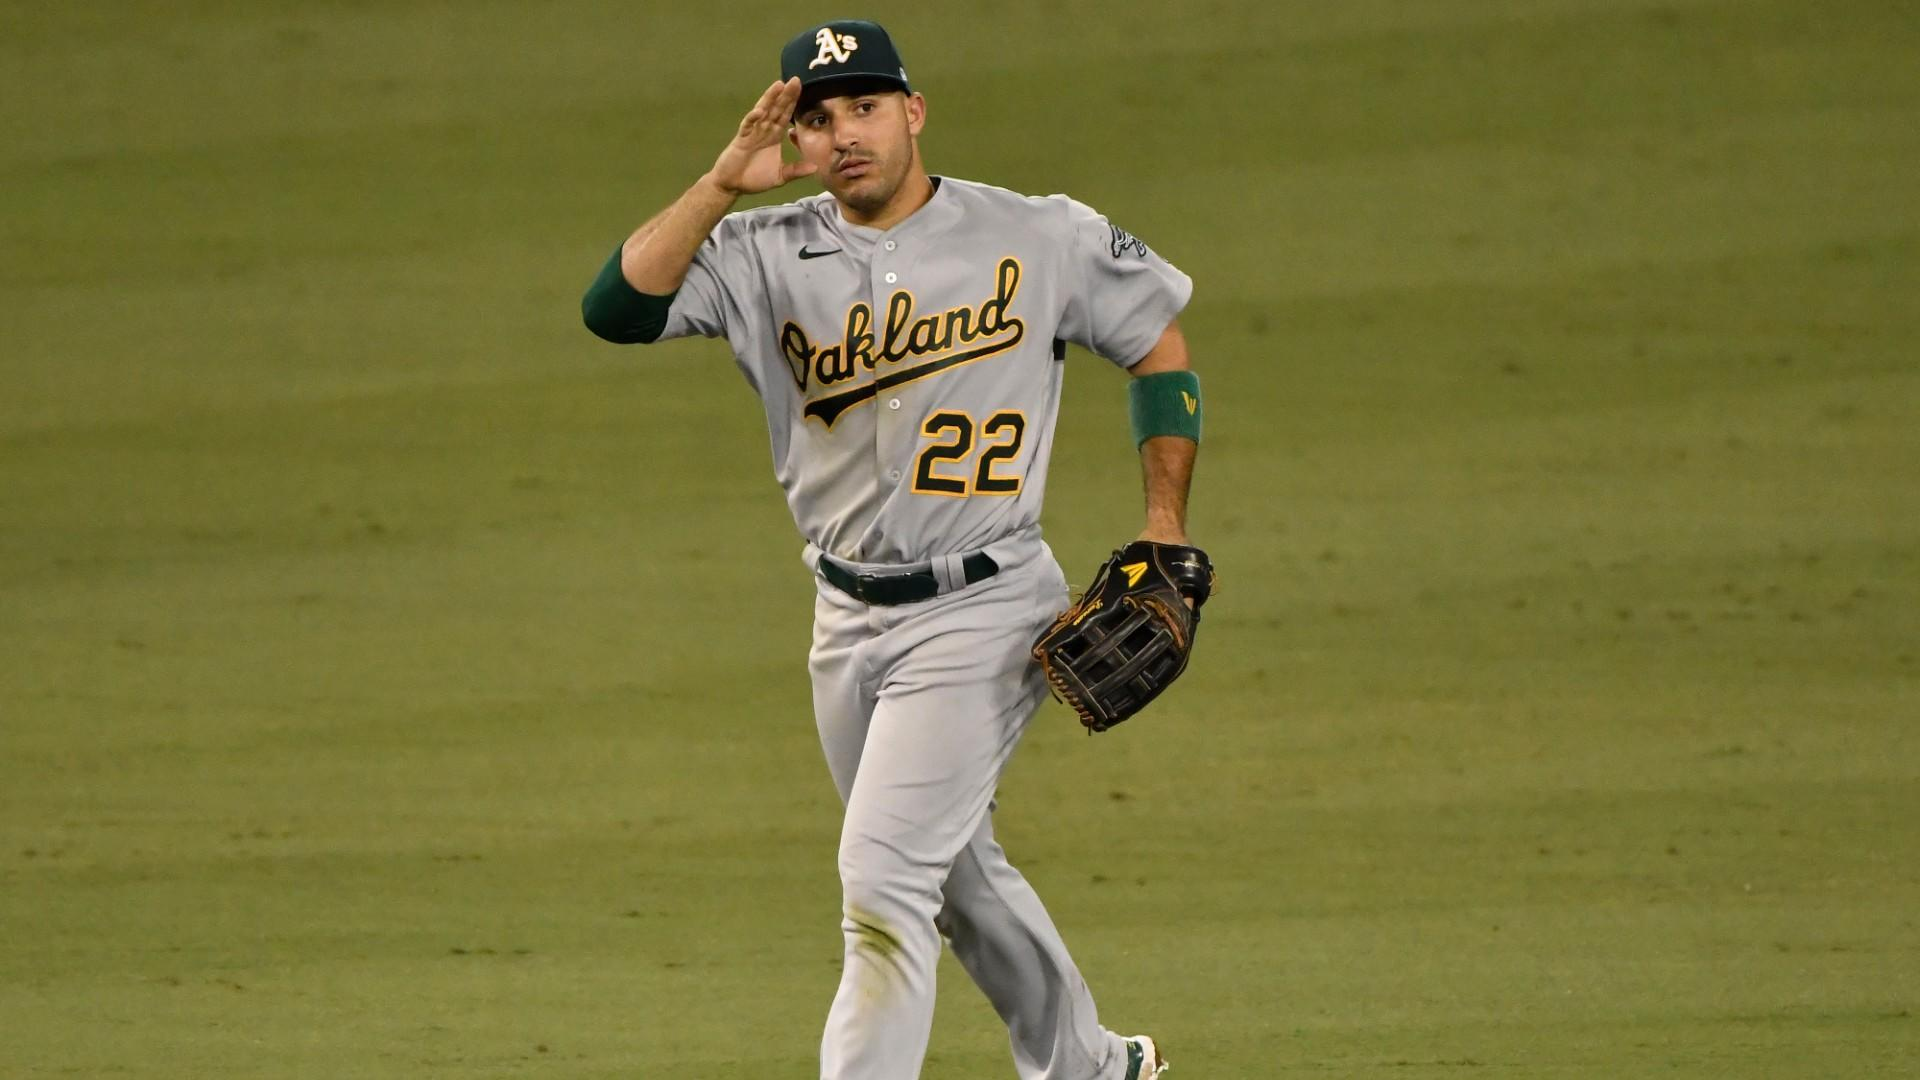 ESPN picked a bad time to mic up A's outfielder Ramón Laureano